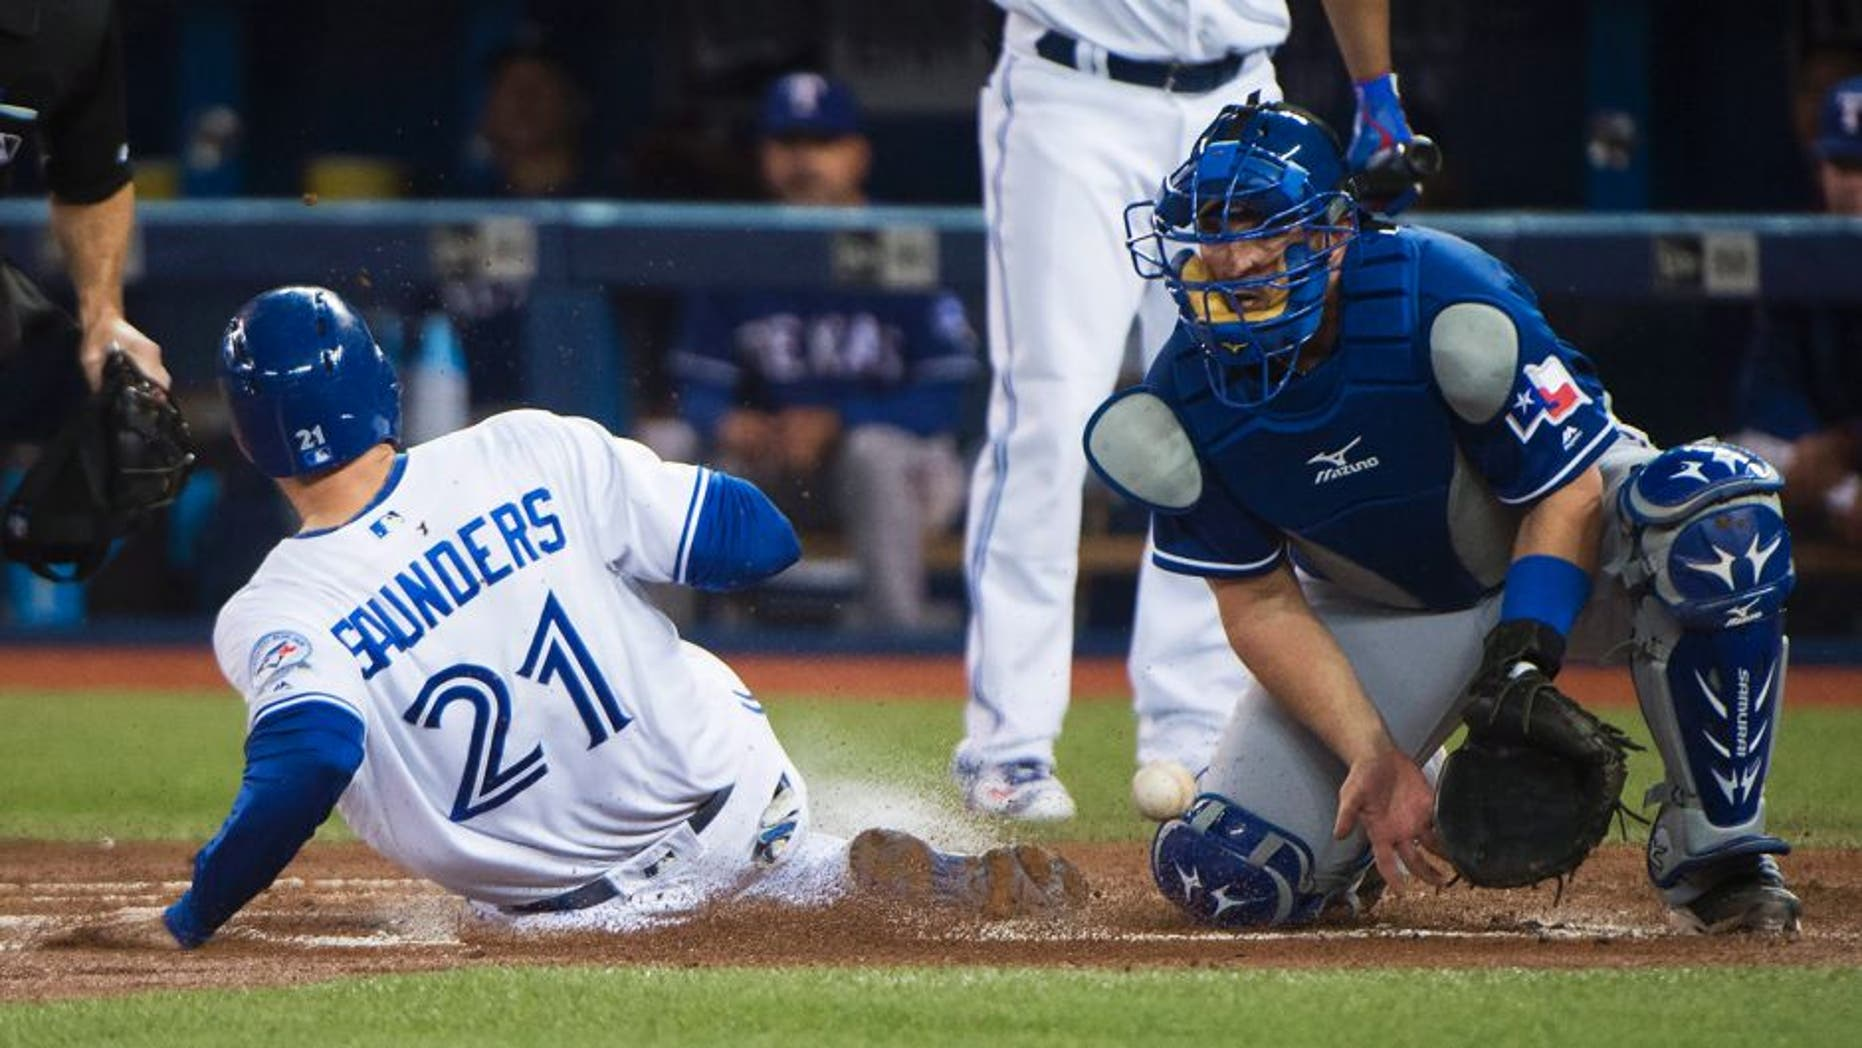 Toronto Blue Jays left fielder Michael Saunders (21) sides safe at home plate past Texas Rangers catcher Bobby Wilson, right, during the first inning of a baseball game, Wednesday, May 4, 2016, 2016 in Toronto. (Nathan Denette/The Canadian Press via AP) MANDATORY CREDIT